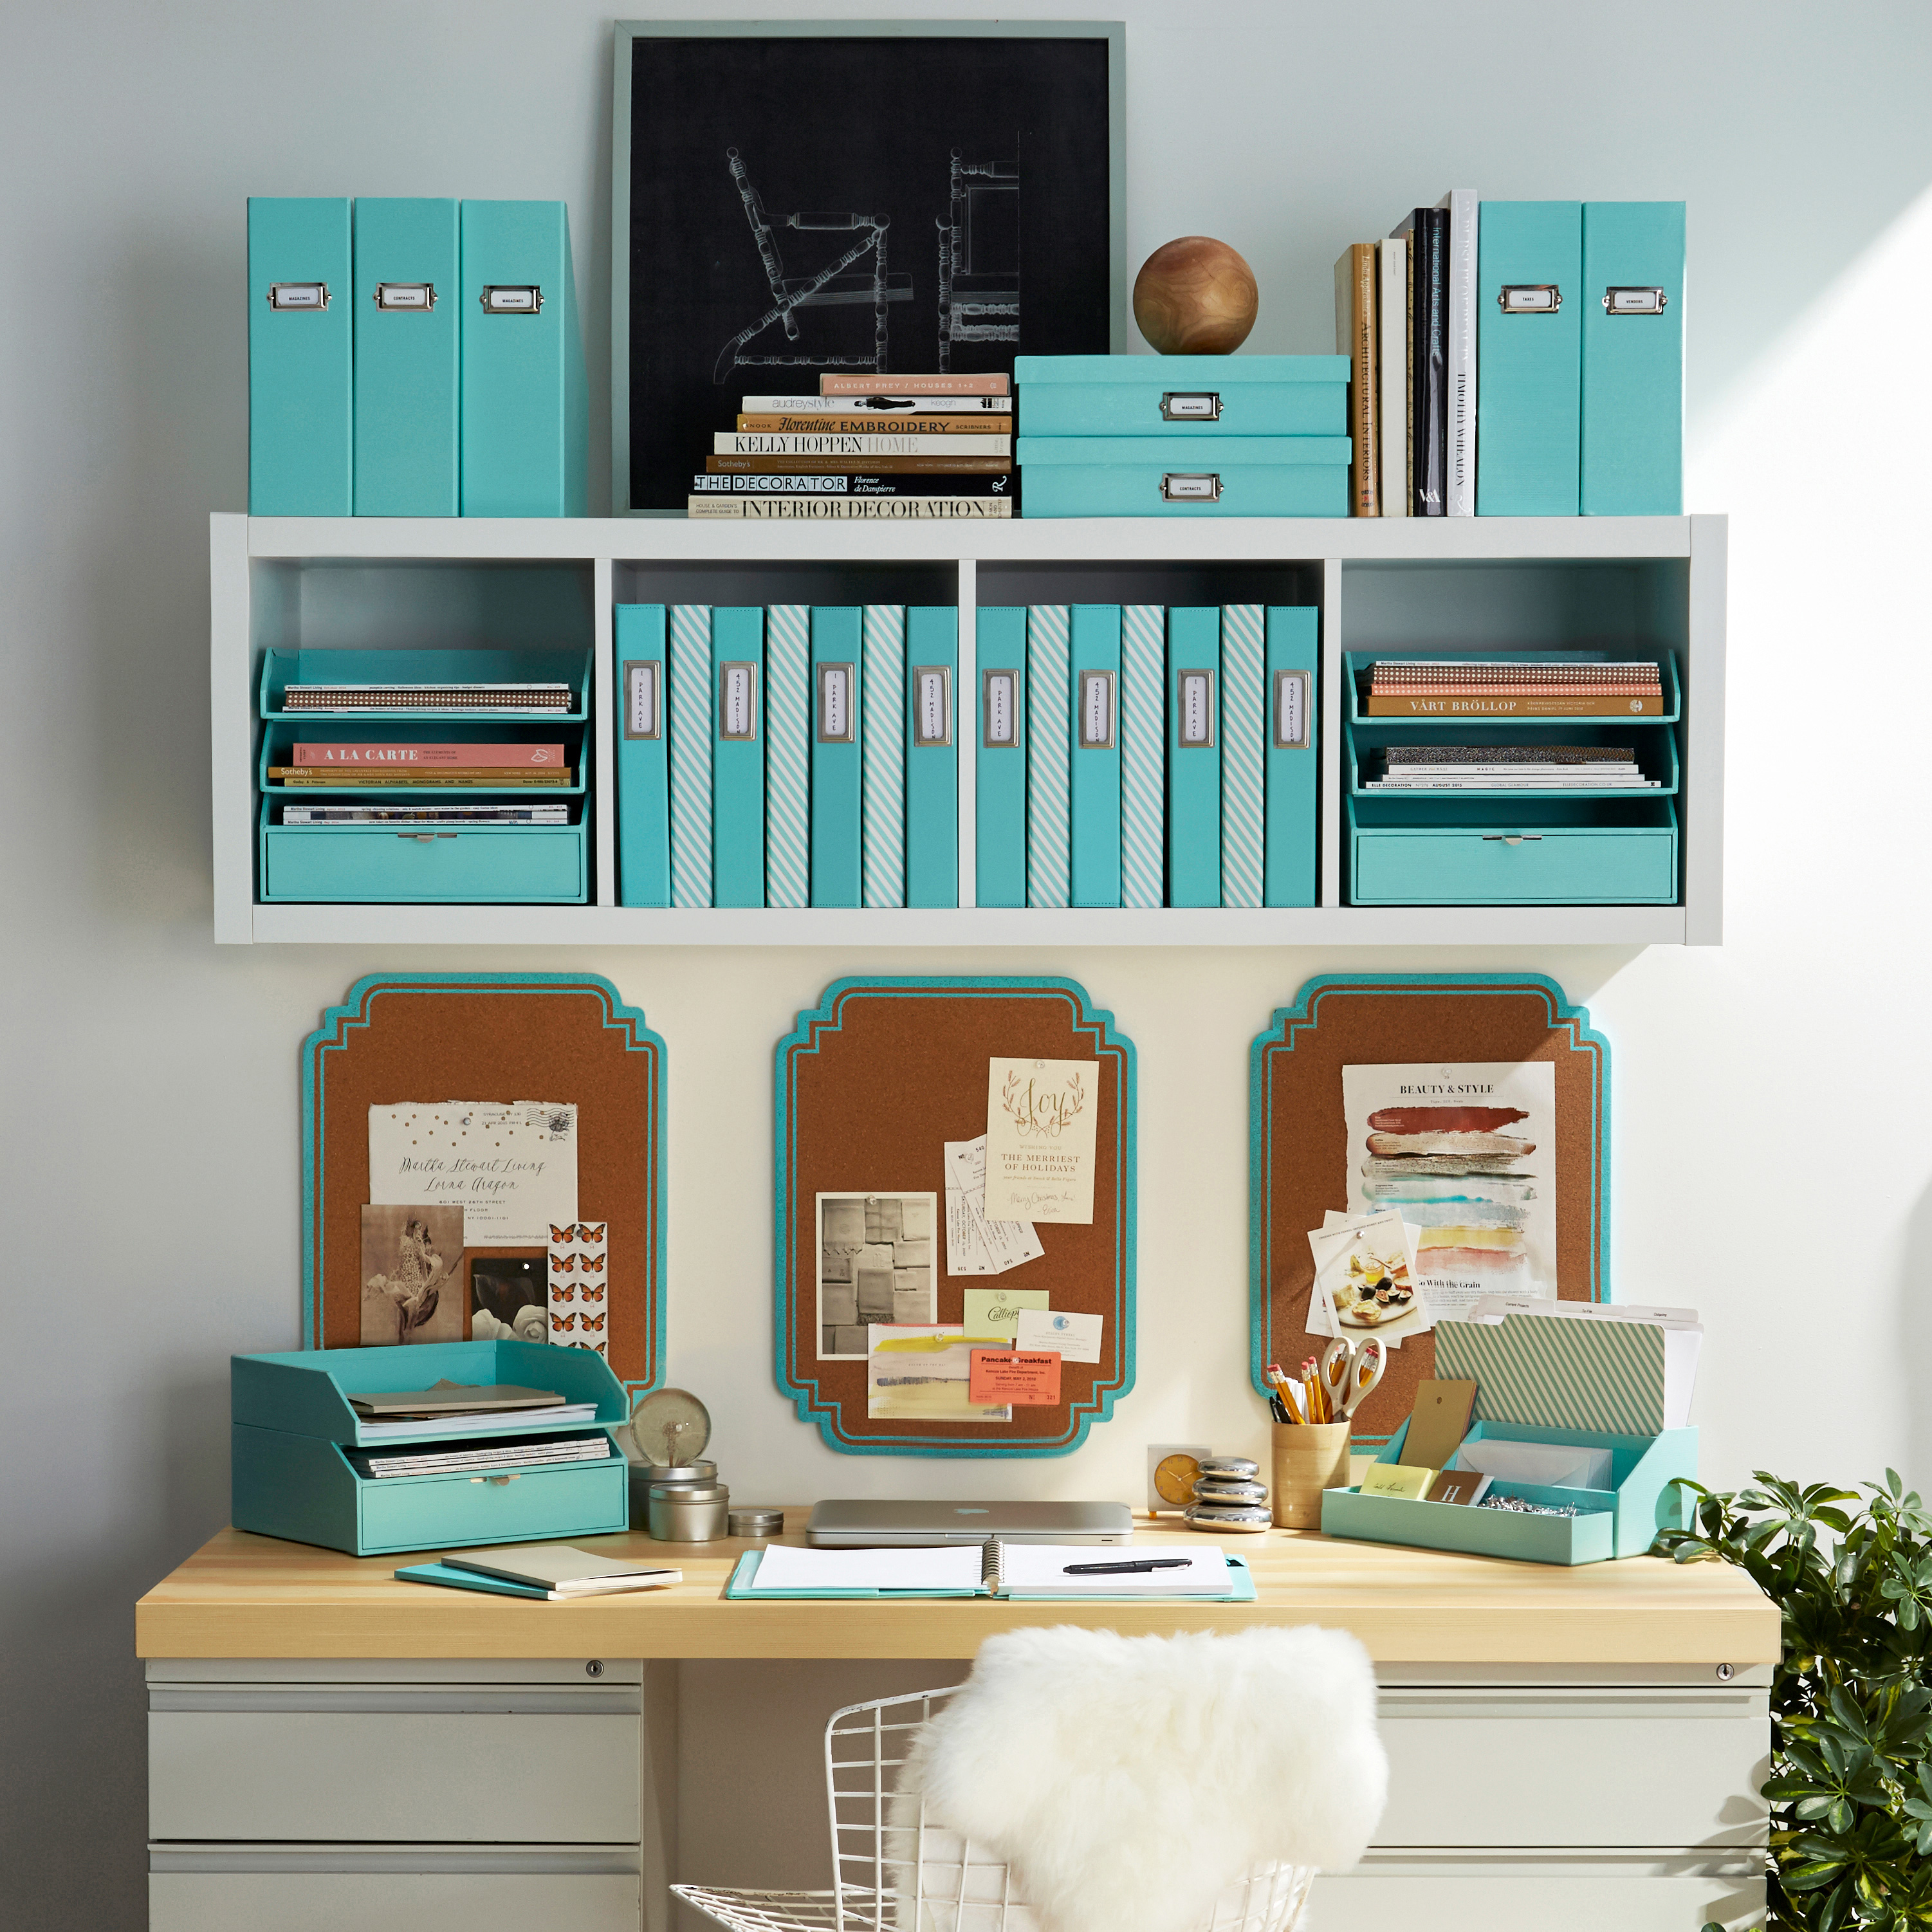 Get ready for the piles of class syllabi, homework assignments, and grade reports with smart storage solutions. Martha's Stack+Fit collection at Staples features file sorters, document boxes, and desktop inboxes that can be securely stacked and positioned without falling over.Office by Martha Stewart Stack + Fit Collection, prices vary, staples.com.